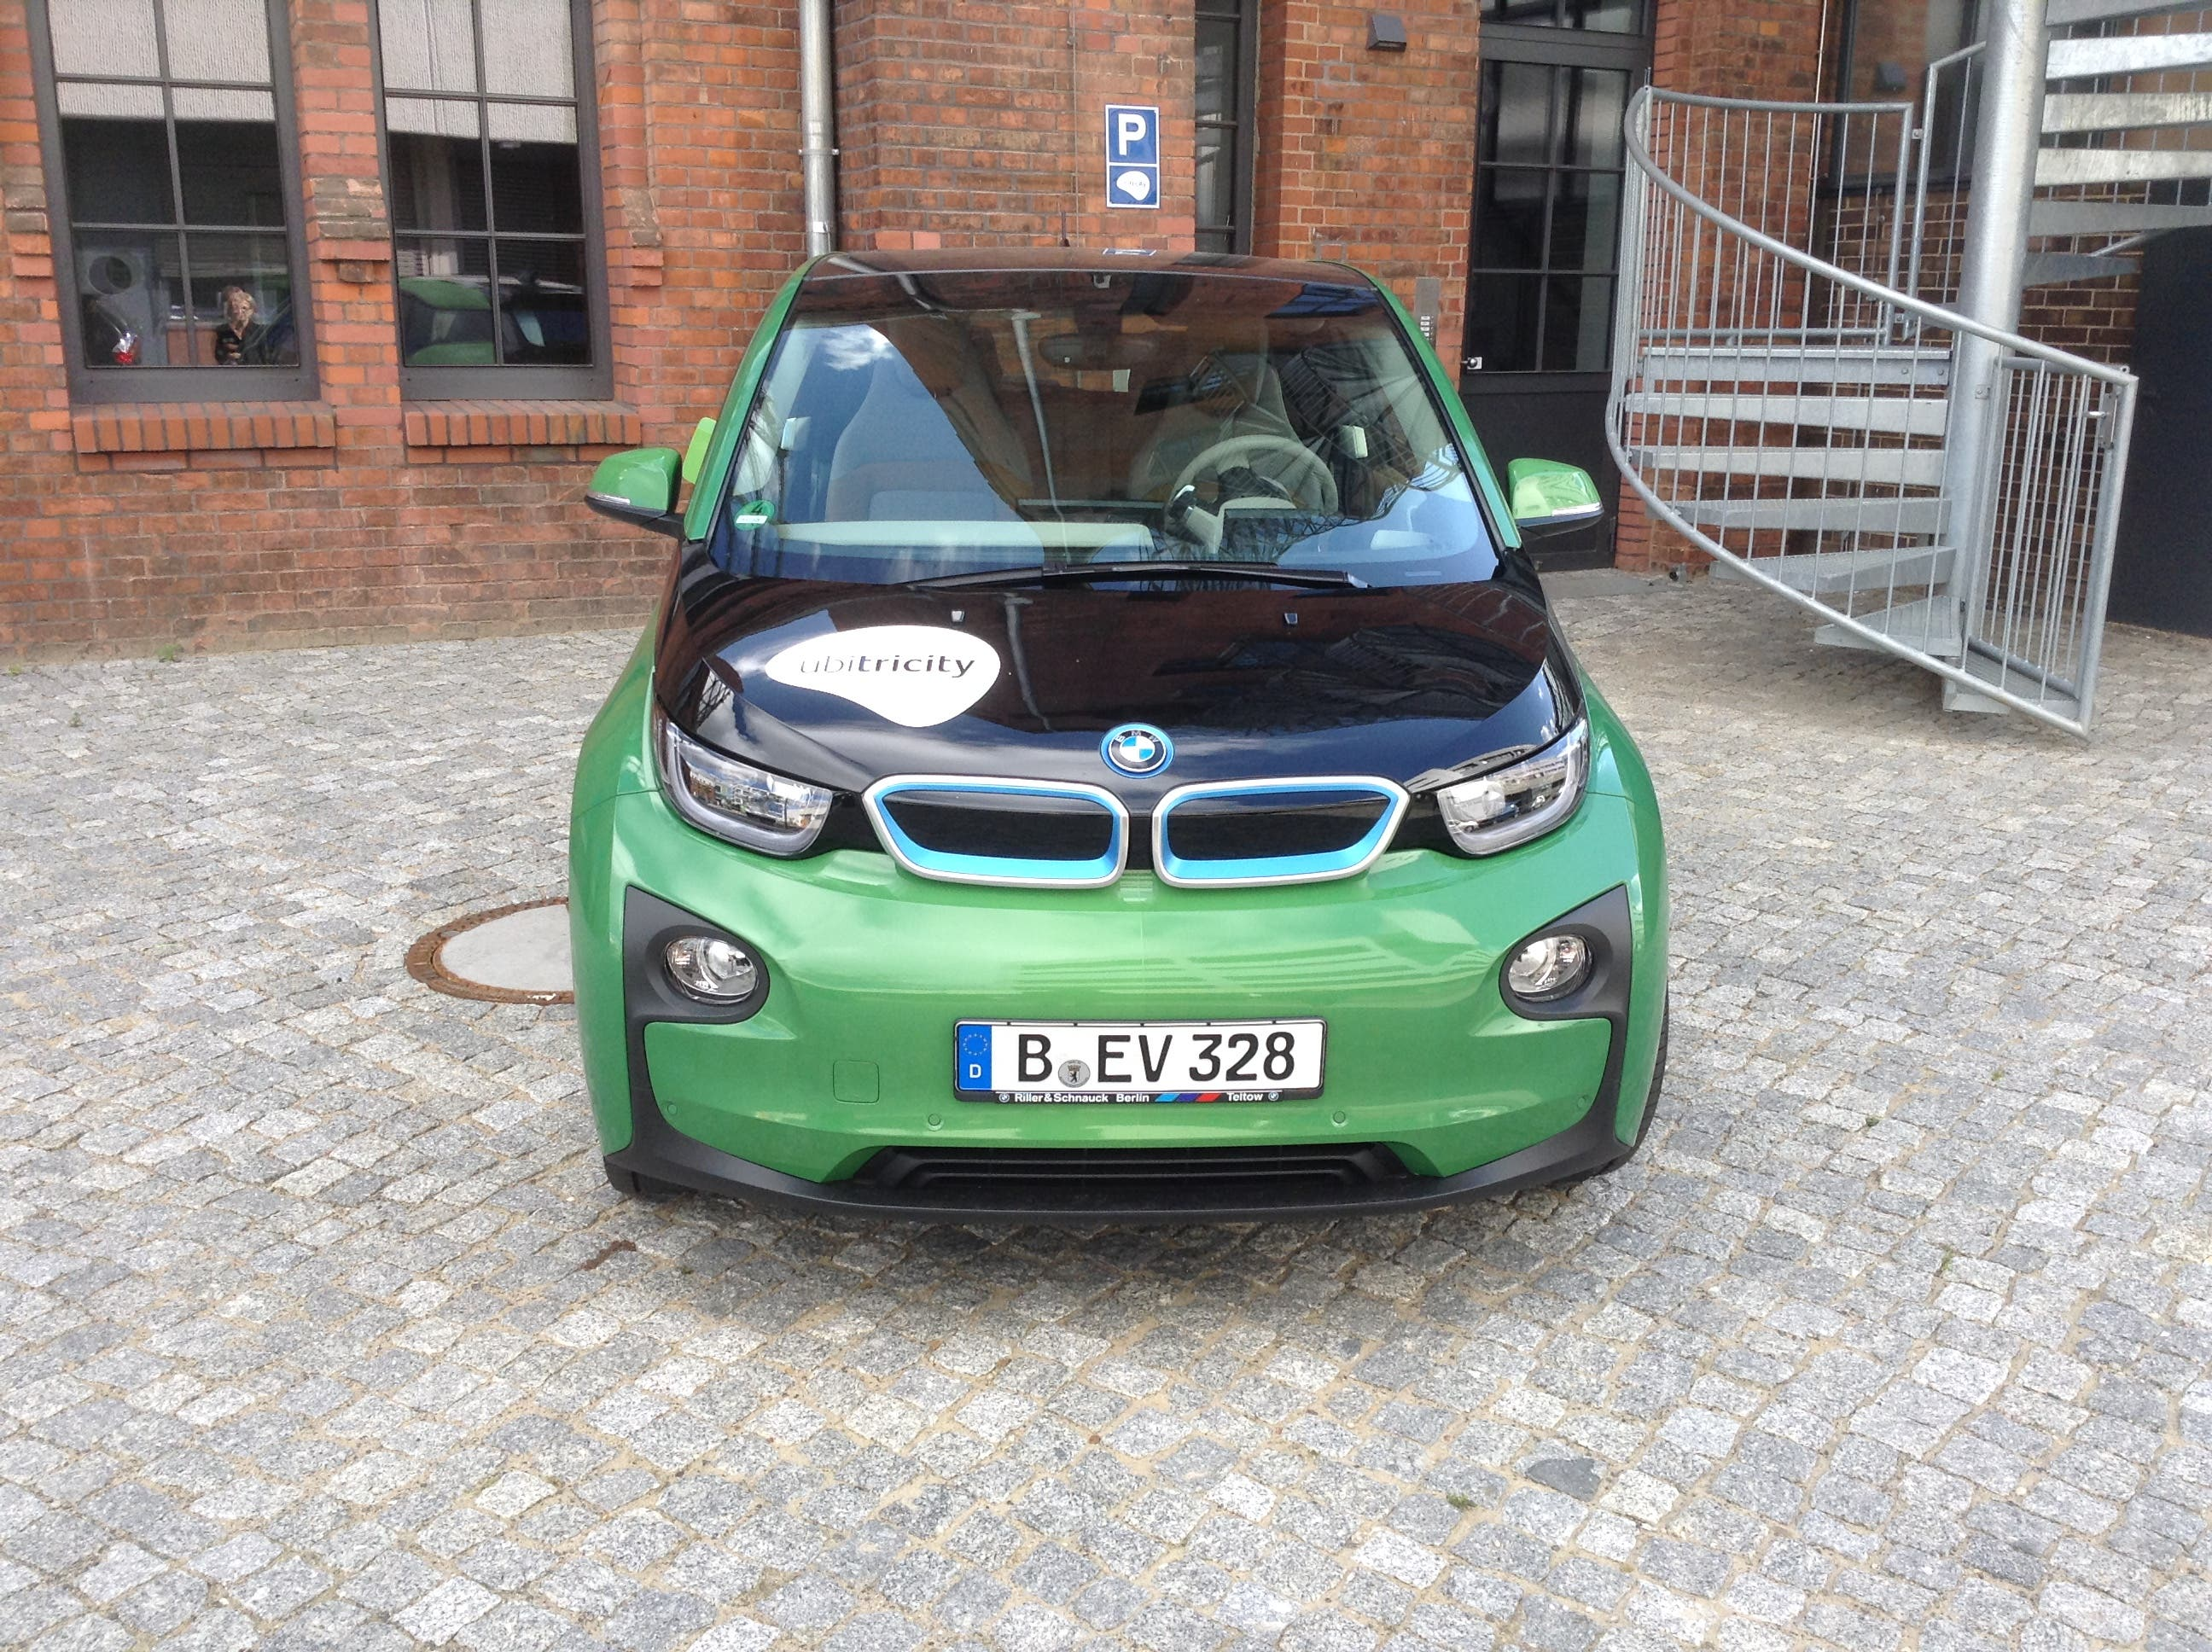 A ubitricity BMW i3 electric car charging in Berlin, Germany.